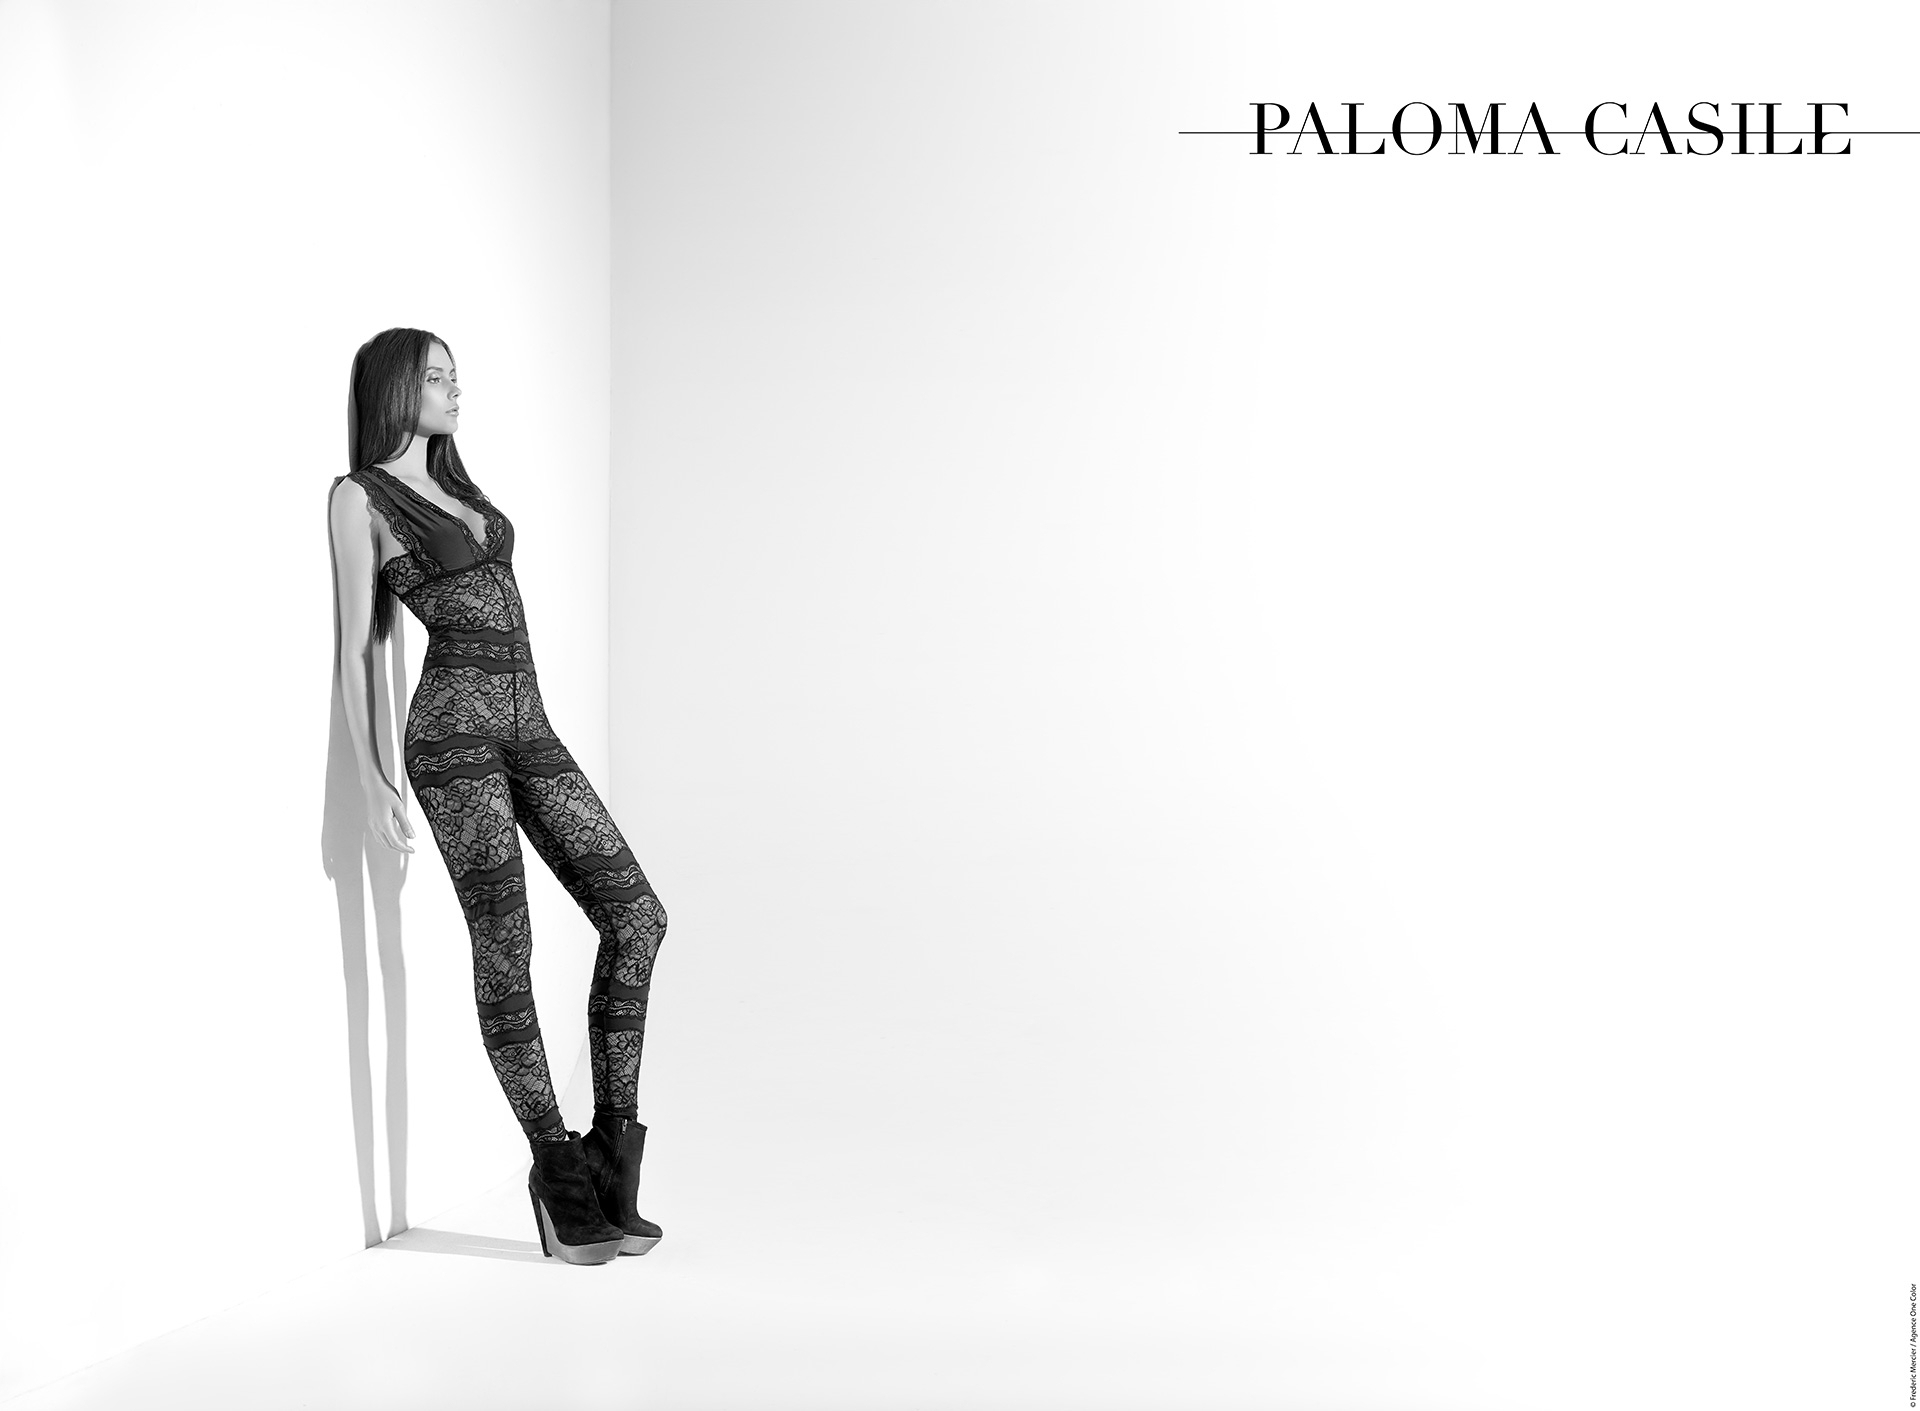 paloma casile ss 2015 campaign lingerie underwear frederic mercier fashion photographer one color